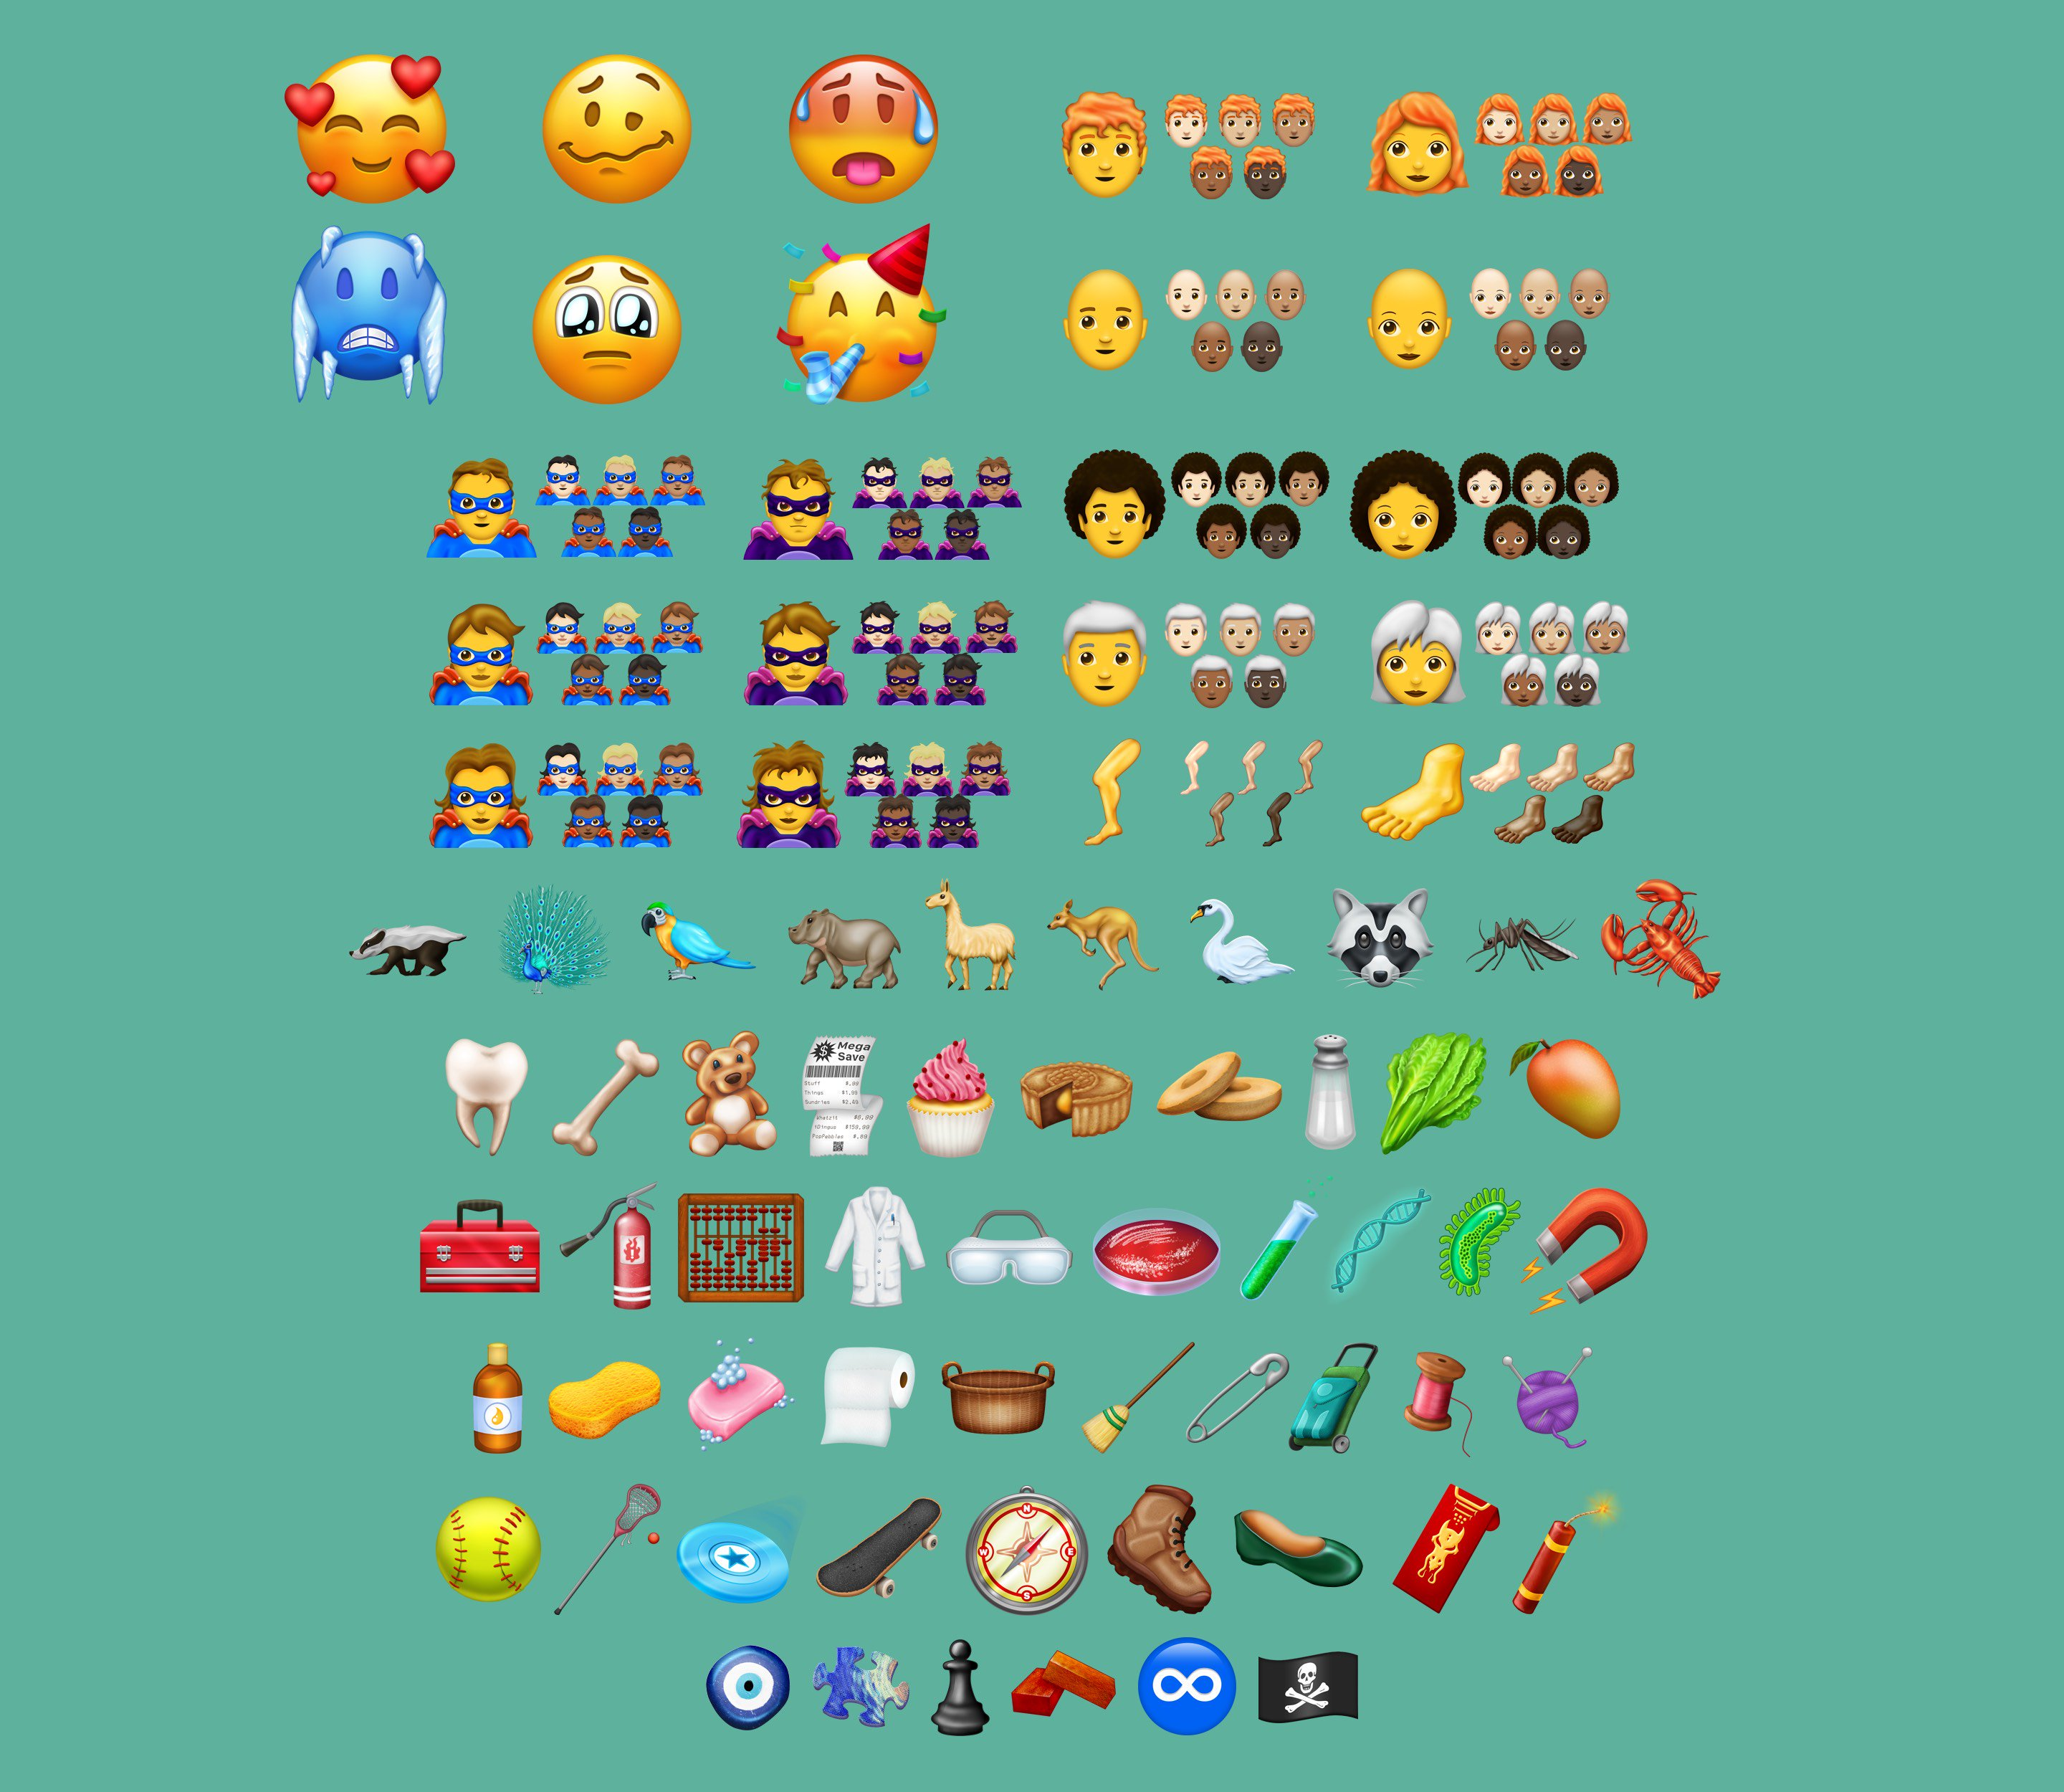 Even before iOS 12 launches, candidate emojis for 2019 announced